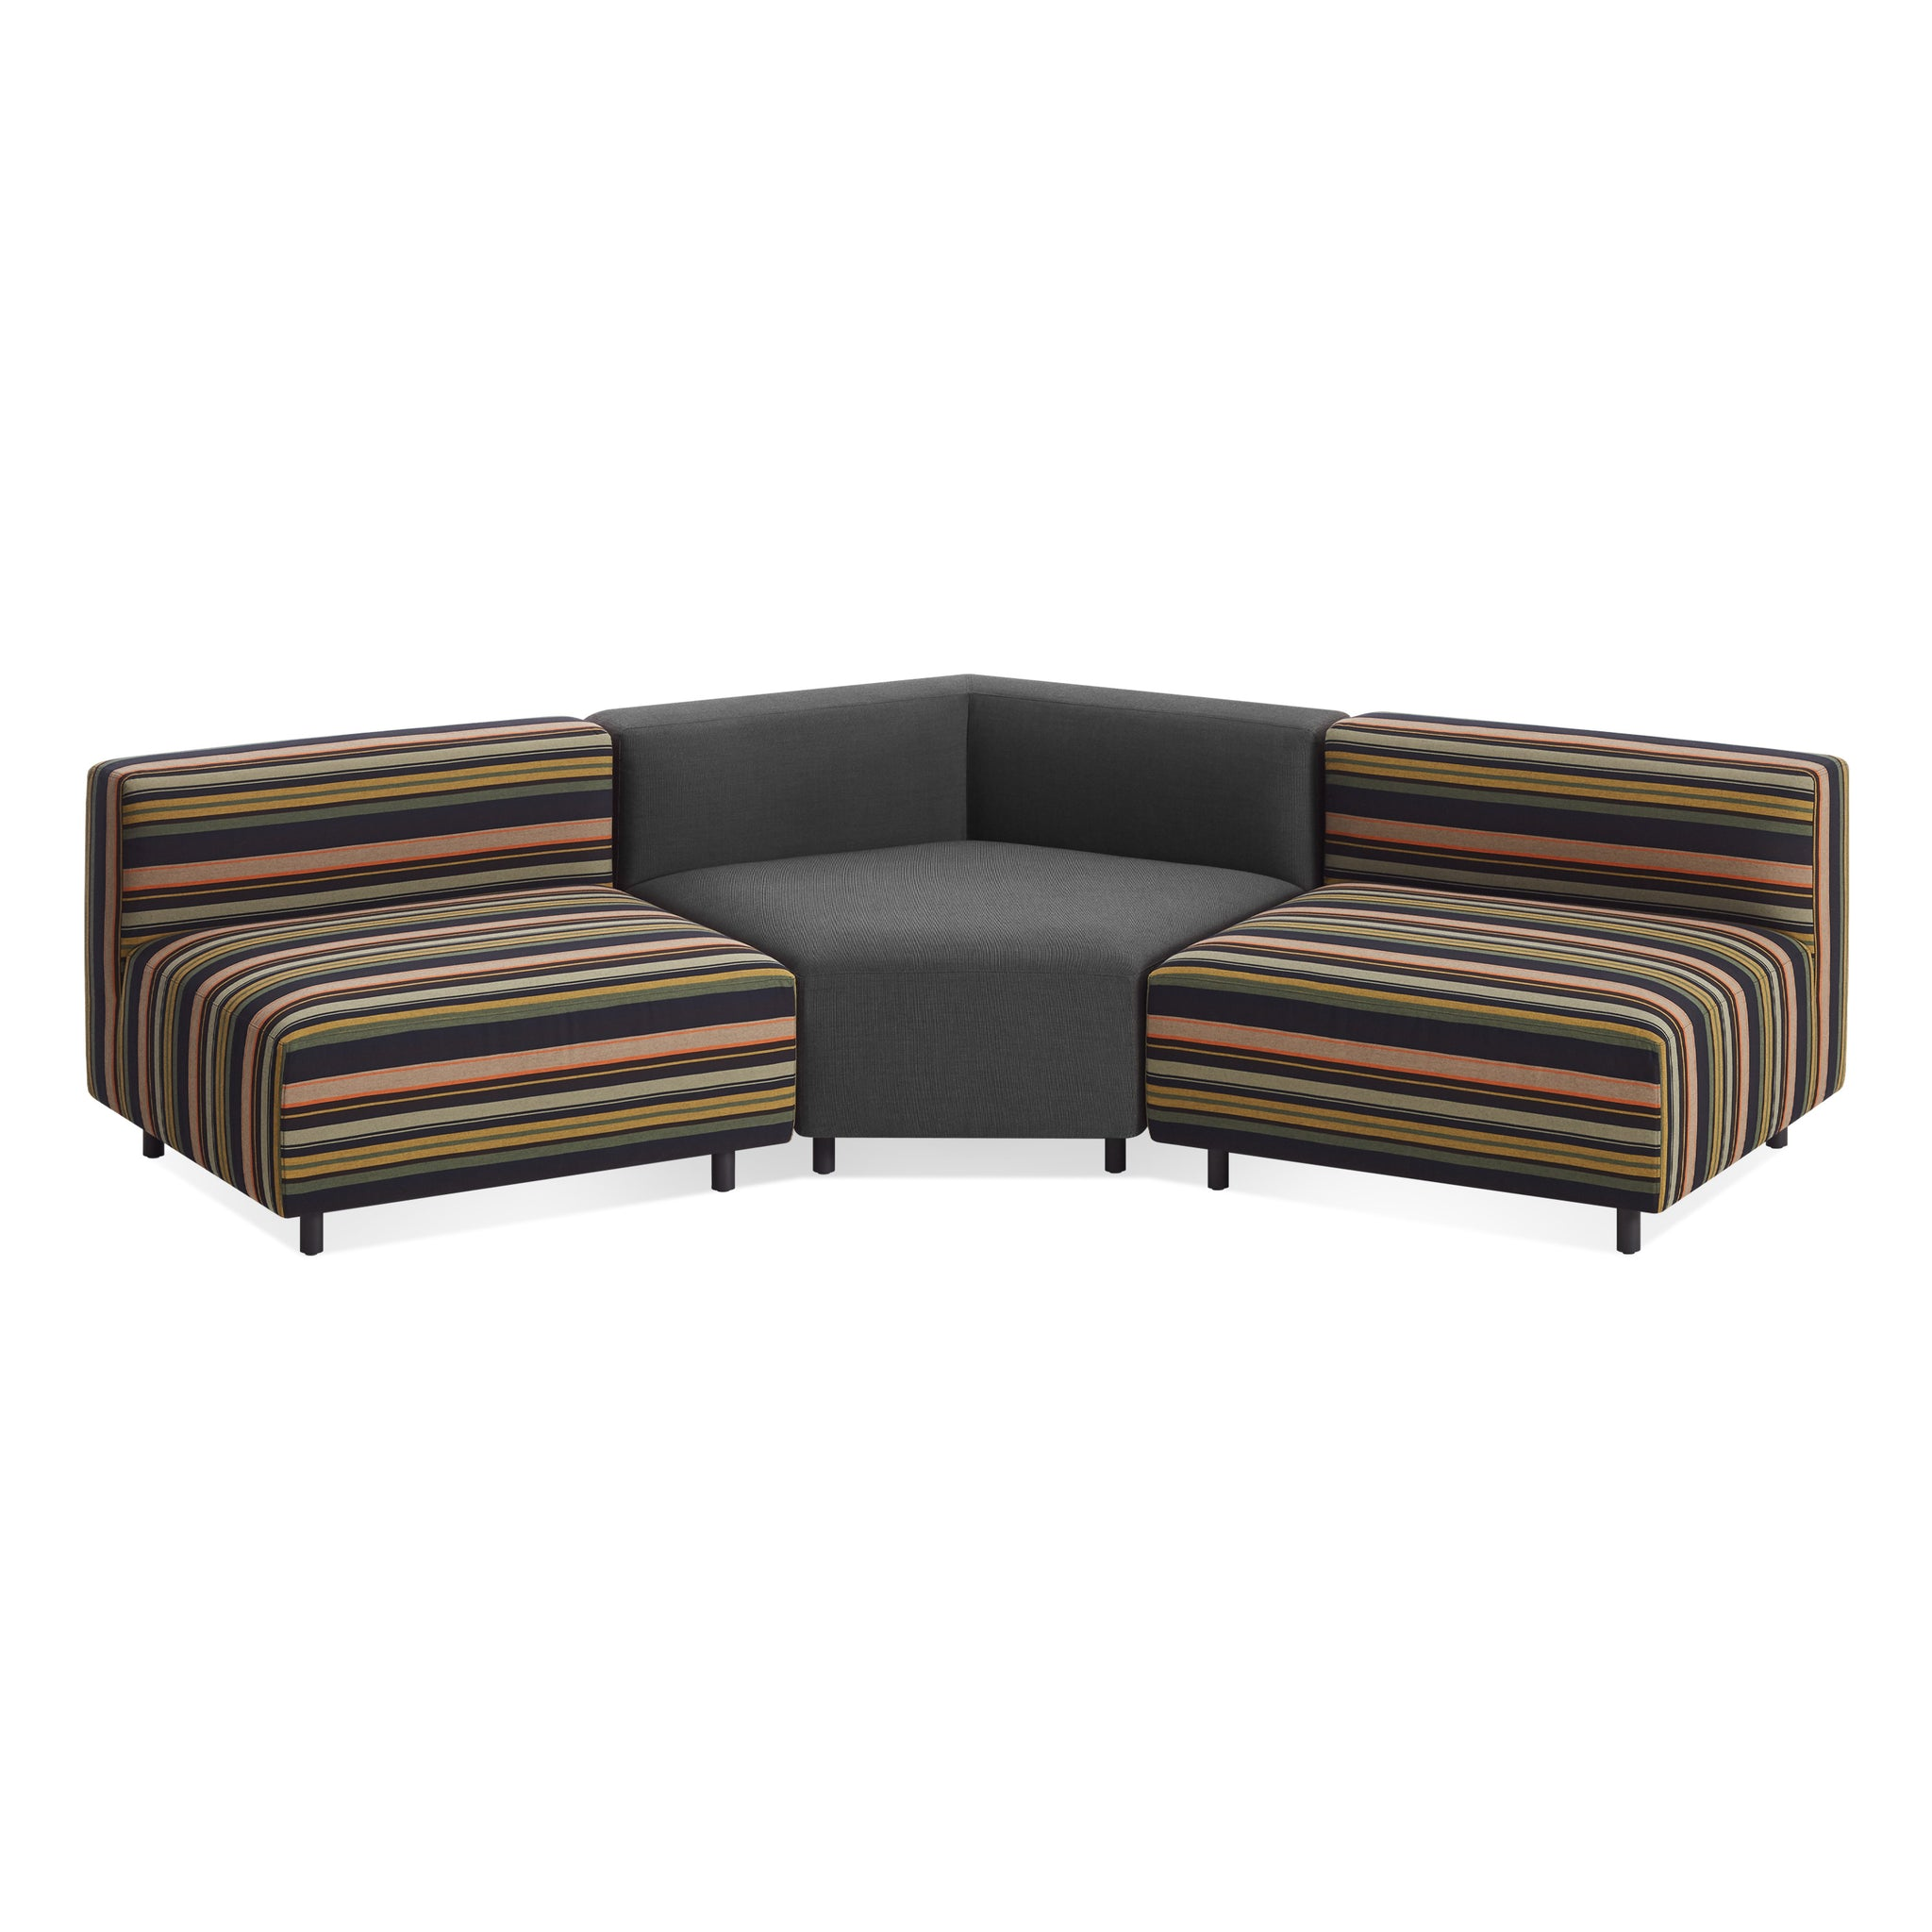 9 Yard Outdoor Angled Small Sectional